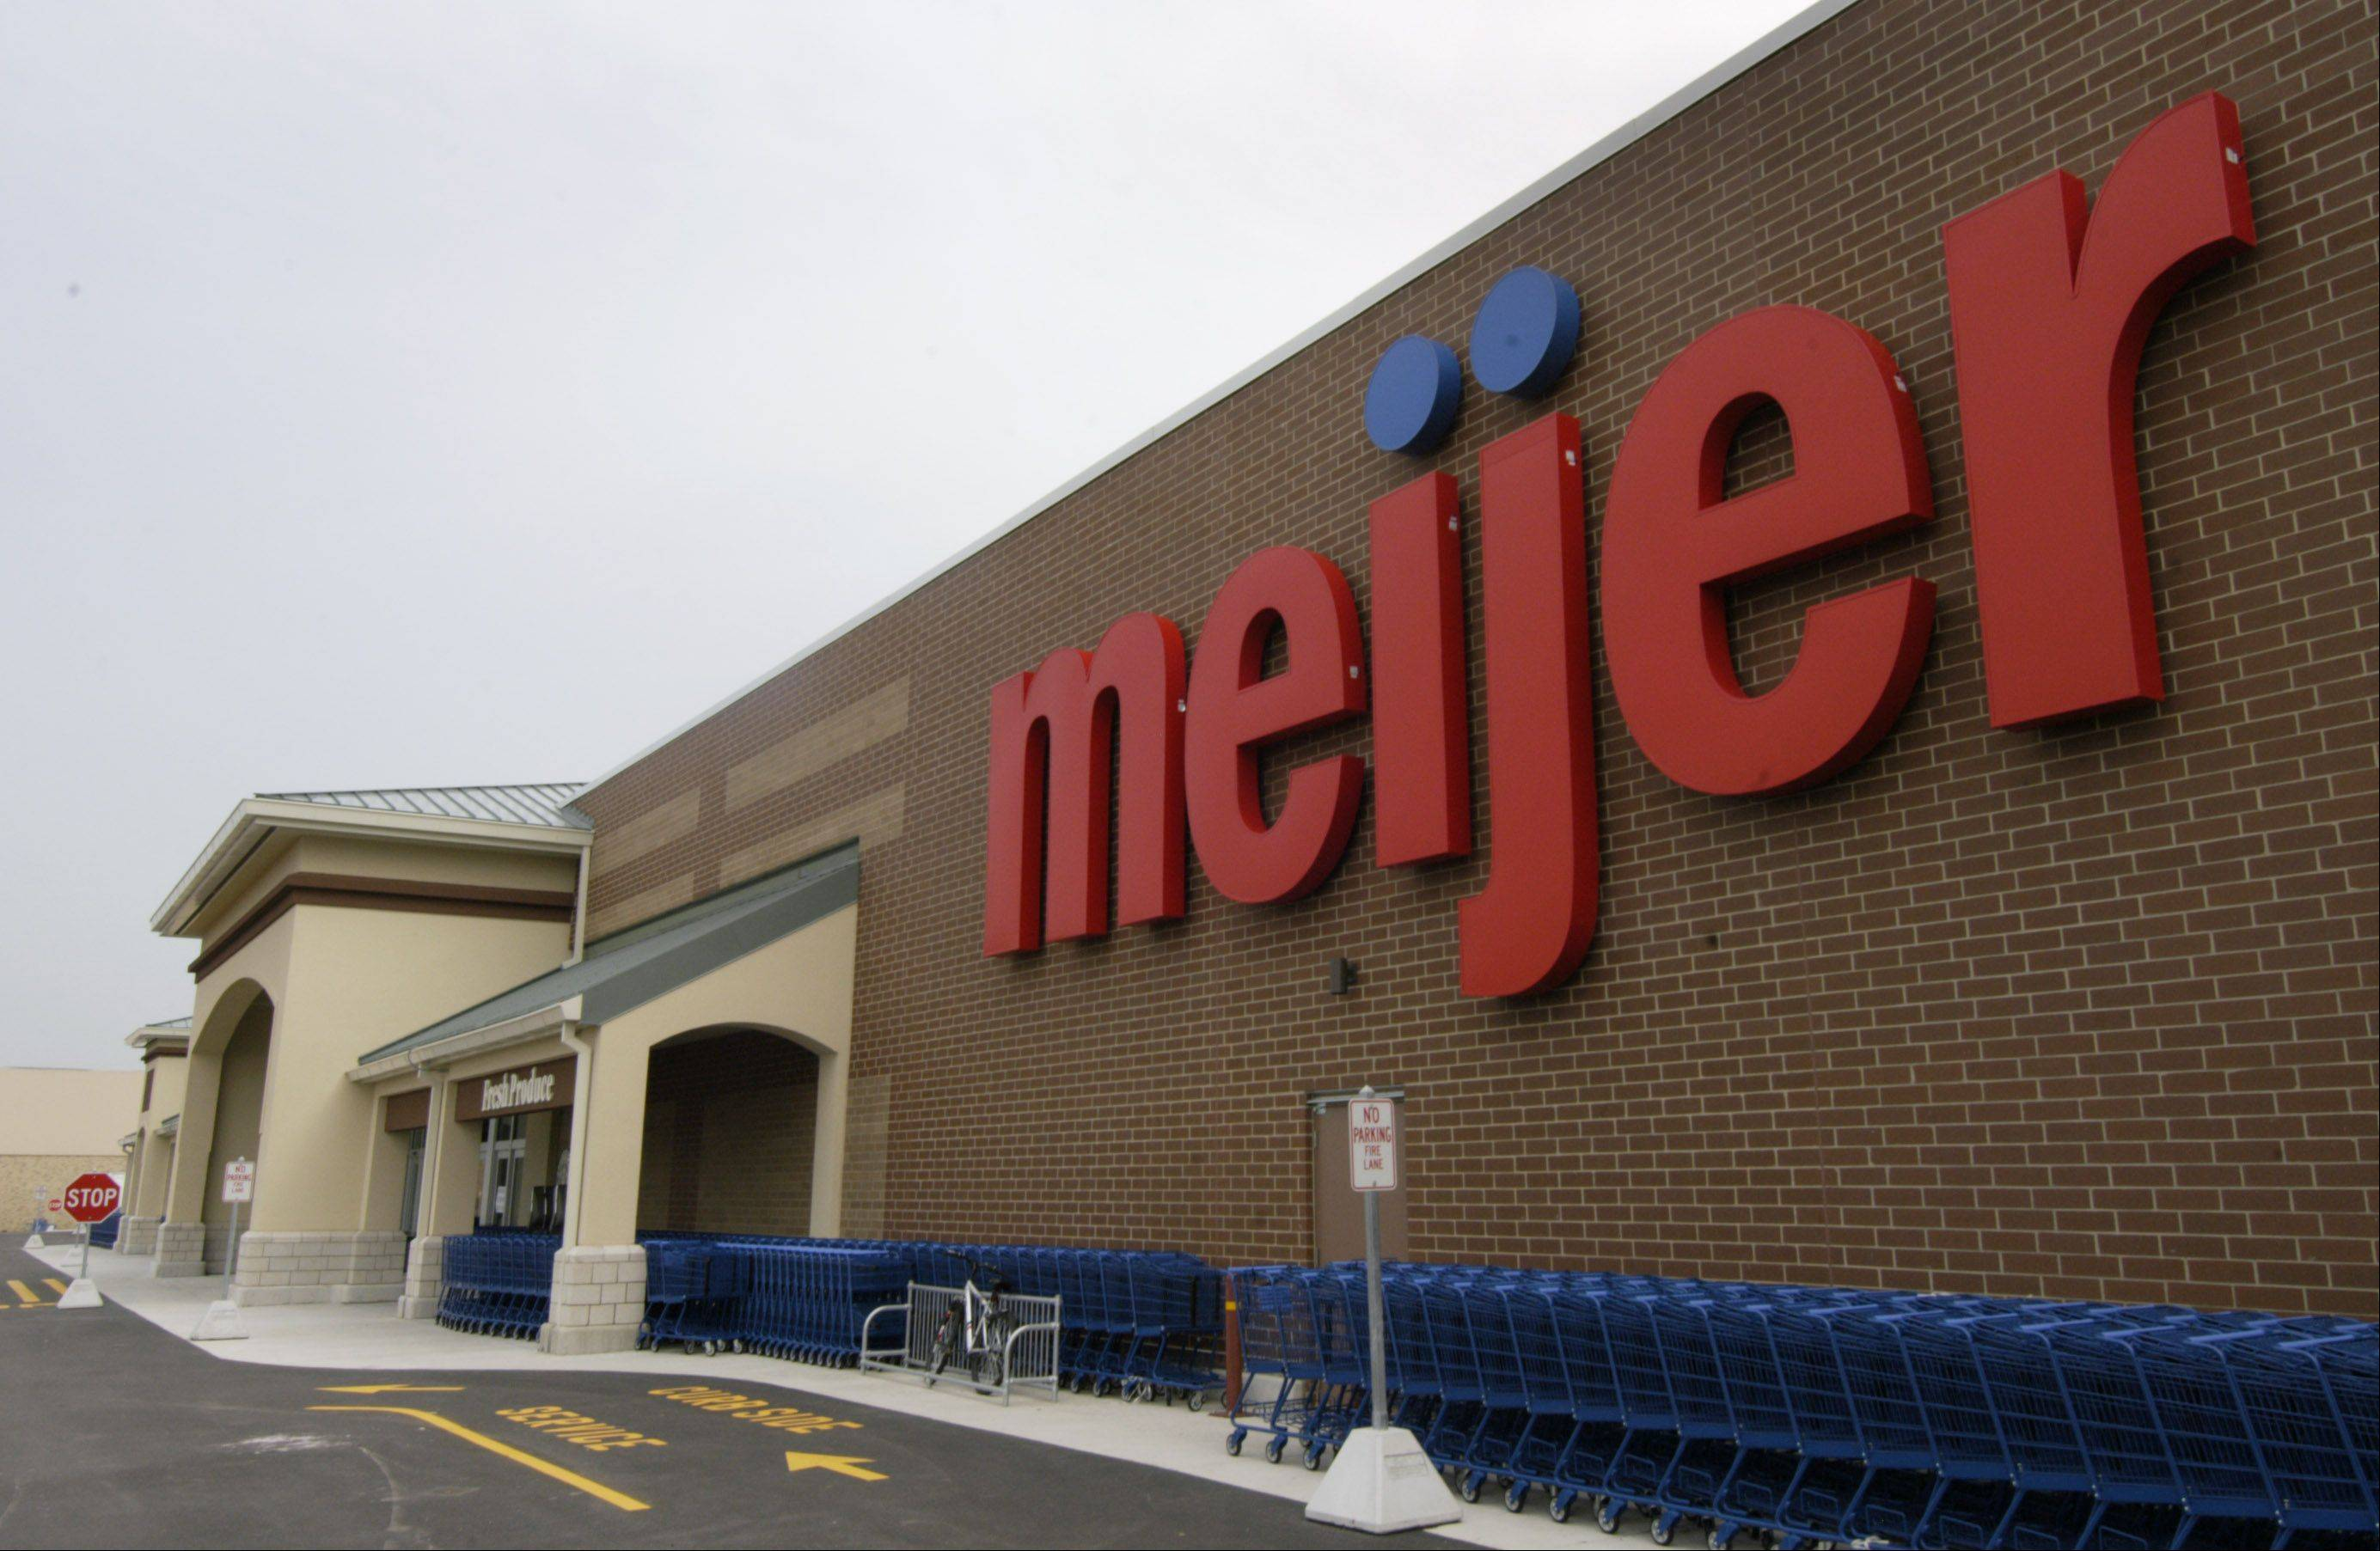 A $3.7 million winning lottery ticket was sold at the Meijer in Rolling Meadows, officials said on Thursday. The winner has yet to come forward.